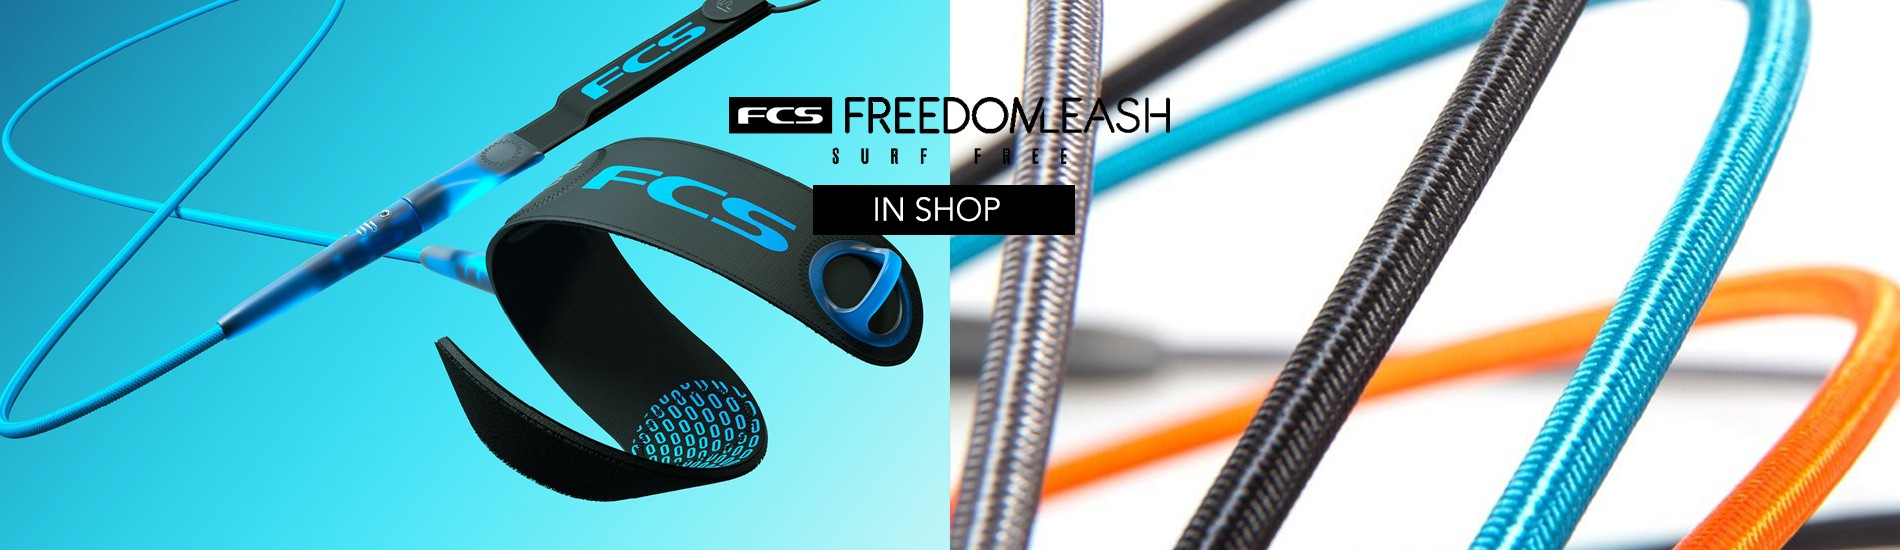 FCS LEASH FREEDOM 2018